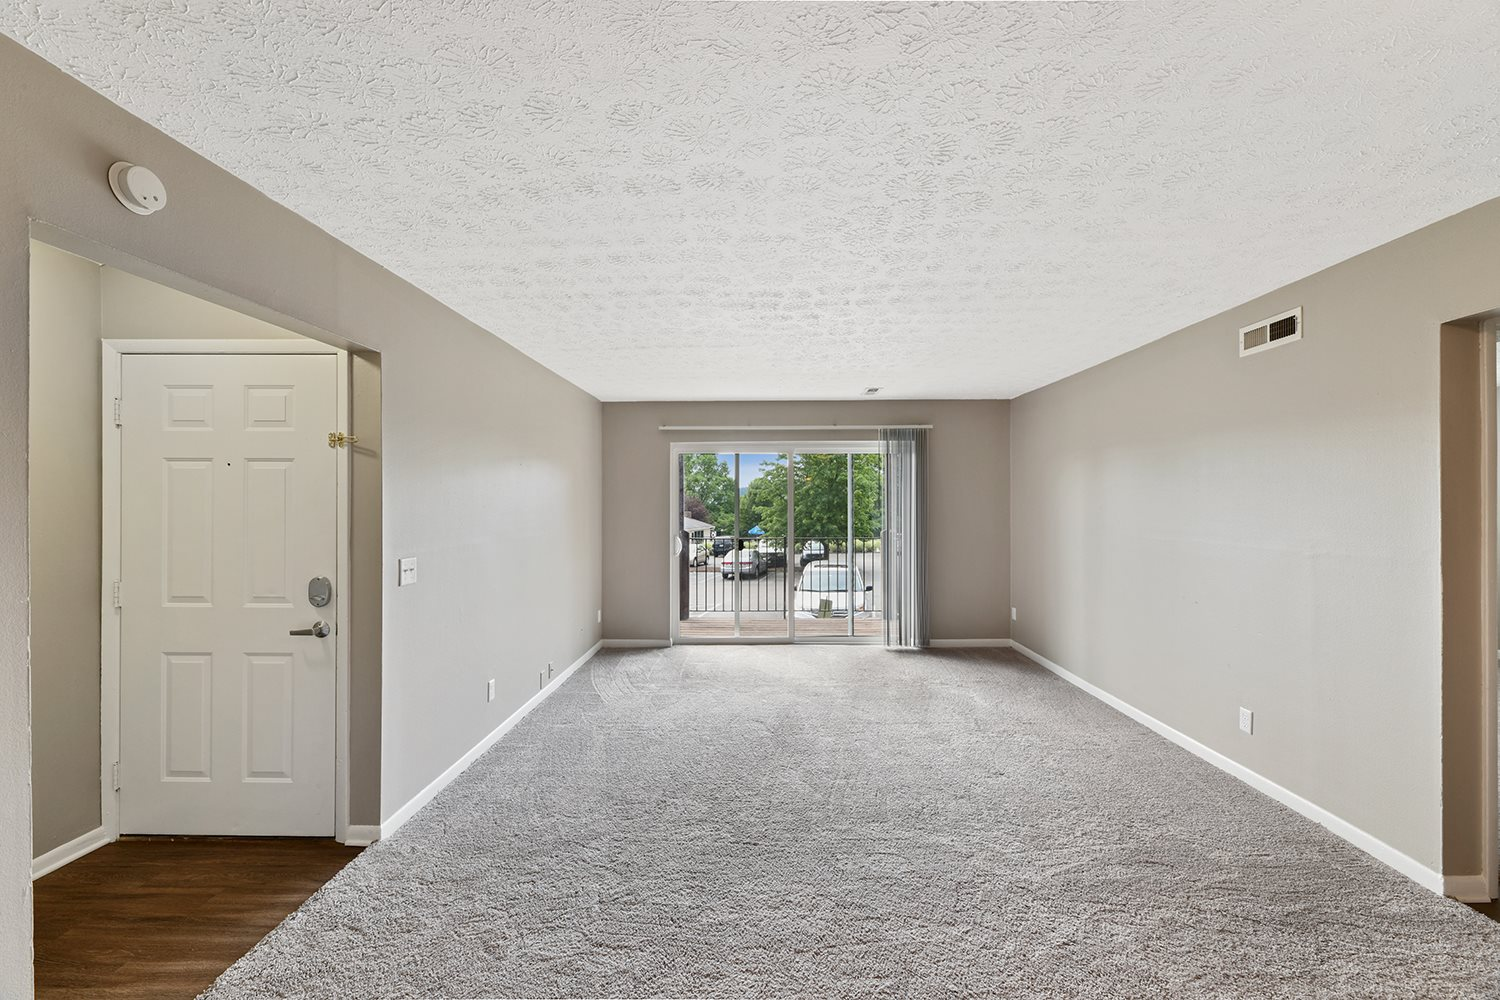 Wall-to-Wall Carpeting at Heritage Hill Estates Apartments, Cincinnati, Ohio